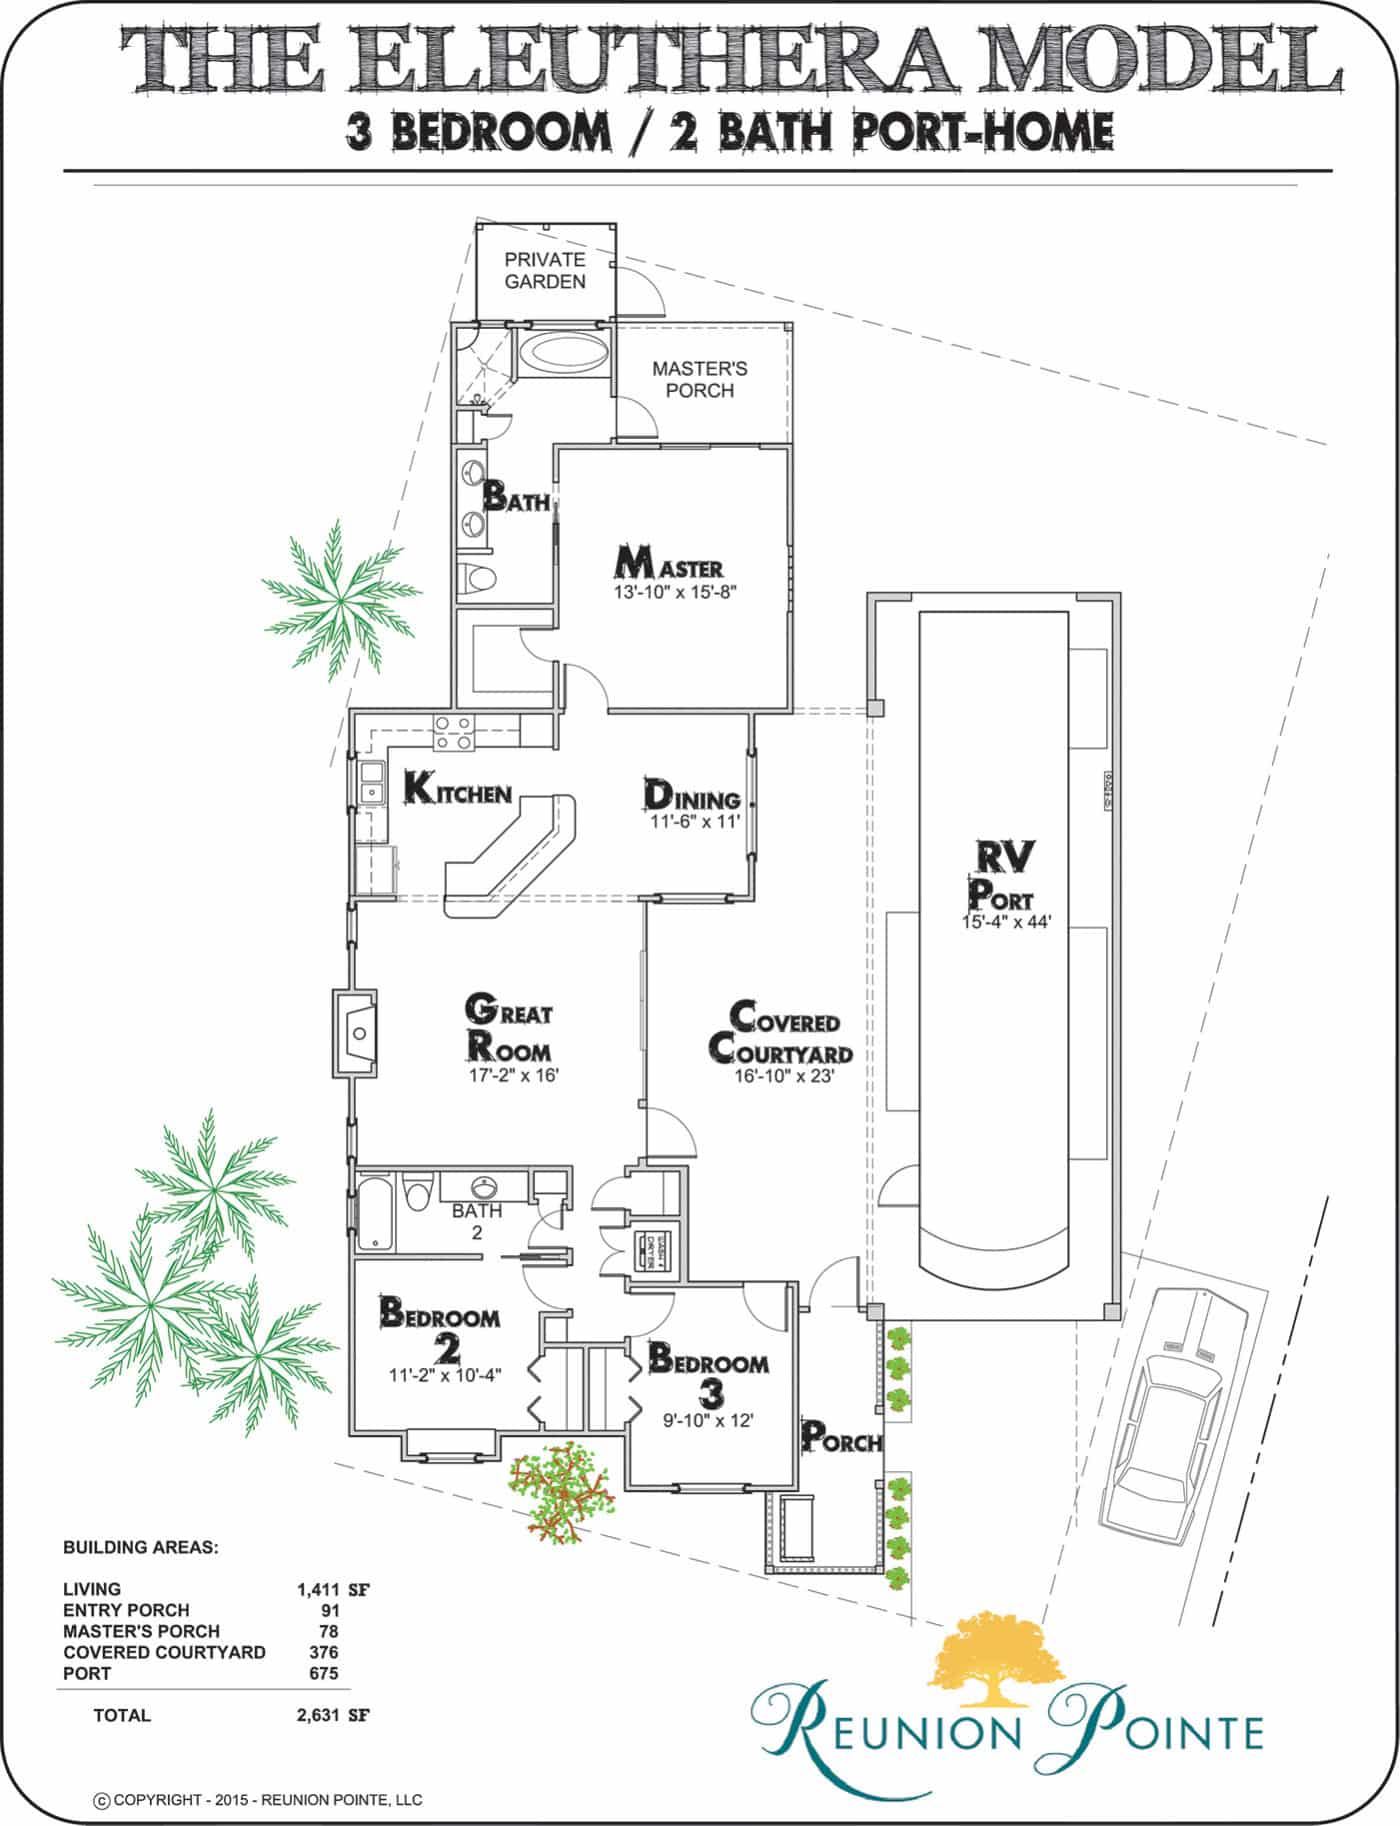 Eleuthera RV Port-Home Model Floorplan